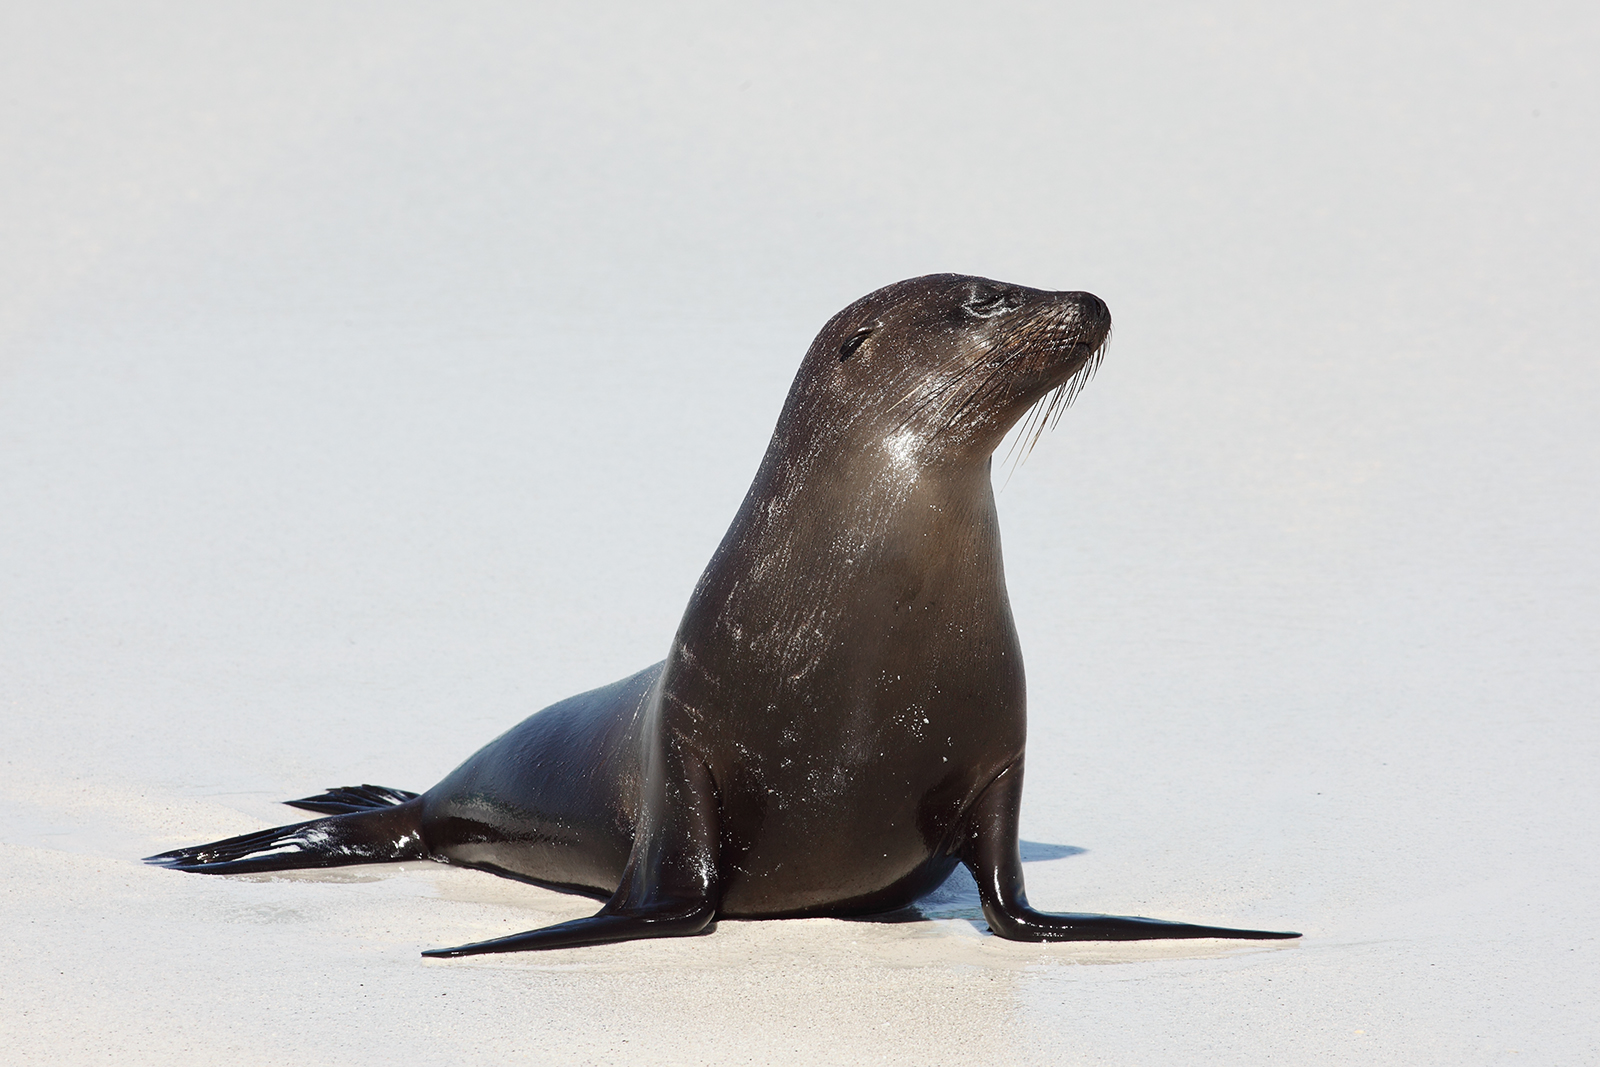 File:Galapagos Sea Lion.jpg - Wikimedia Commons